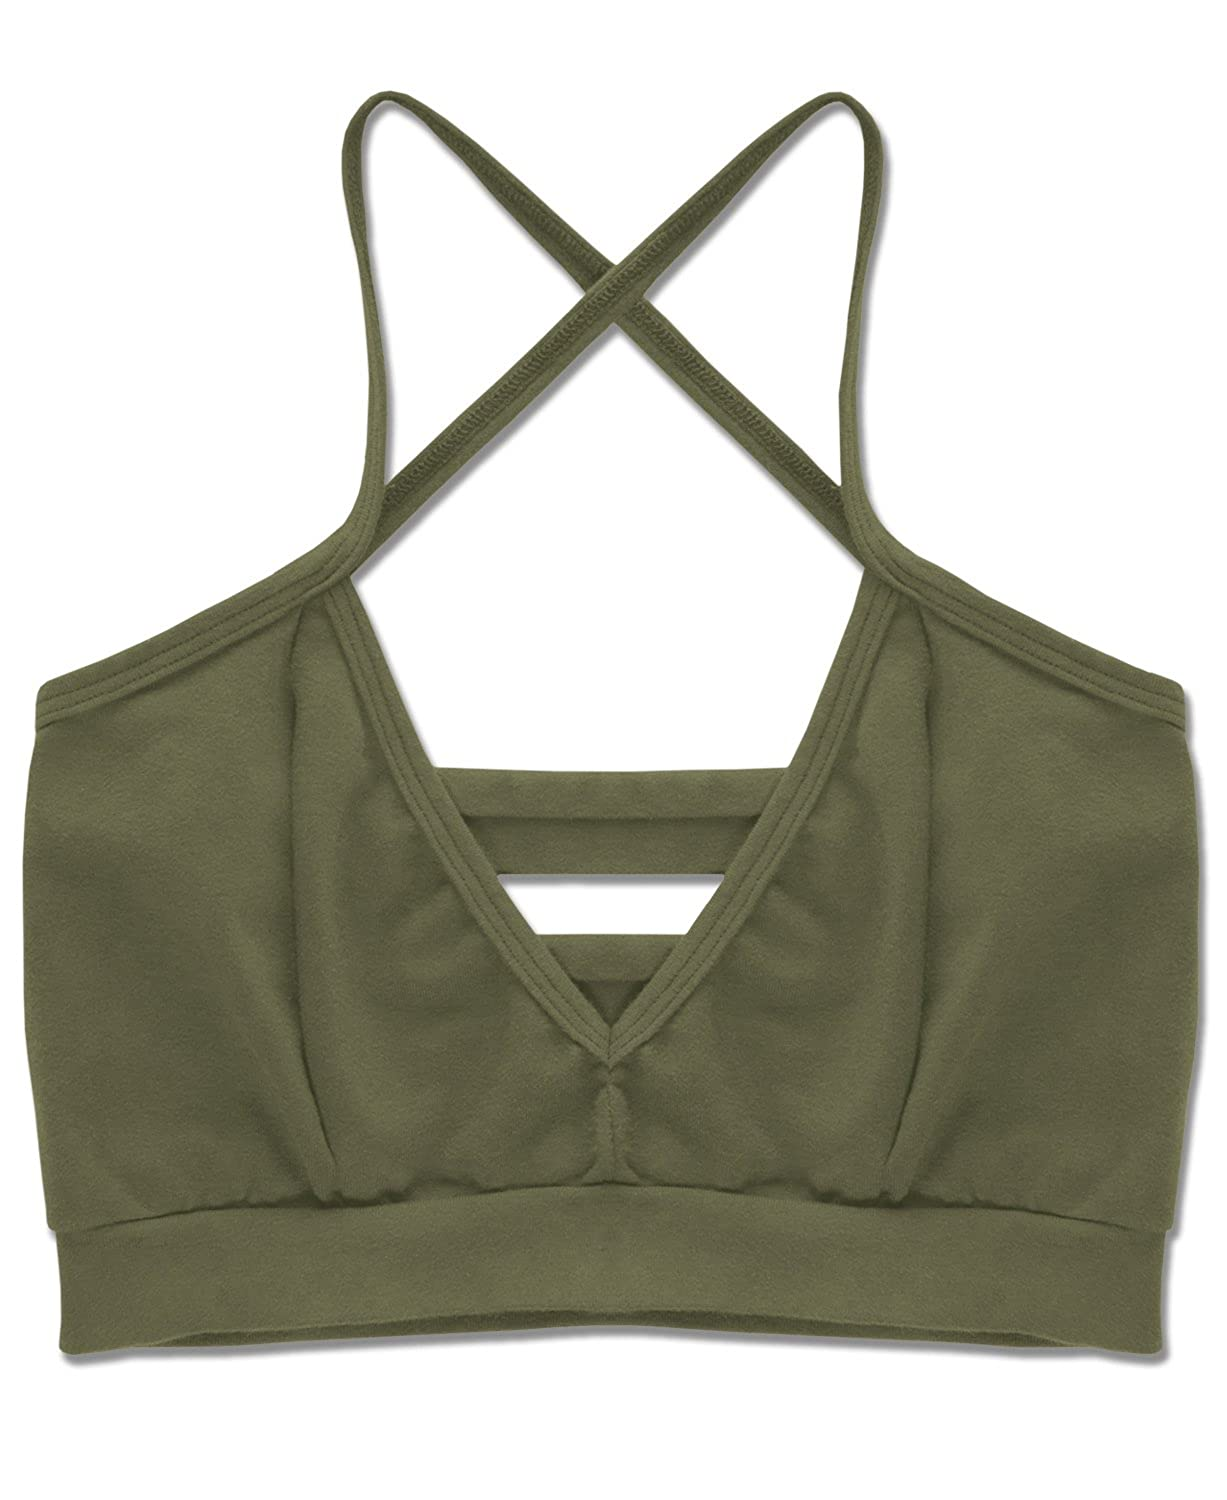 Soul Flower Women's Organic Cotton Strappy Bralette